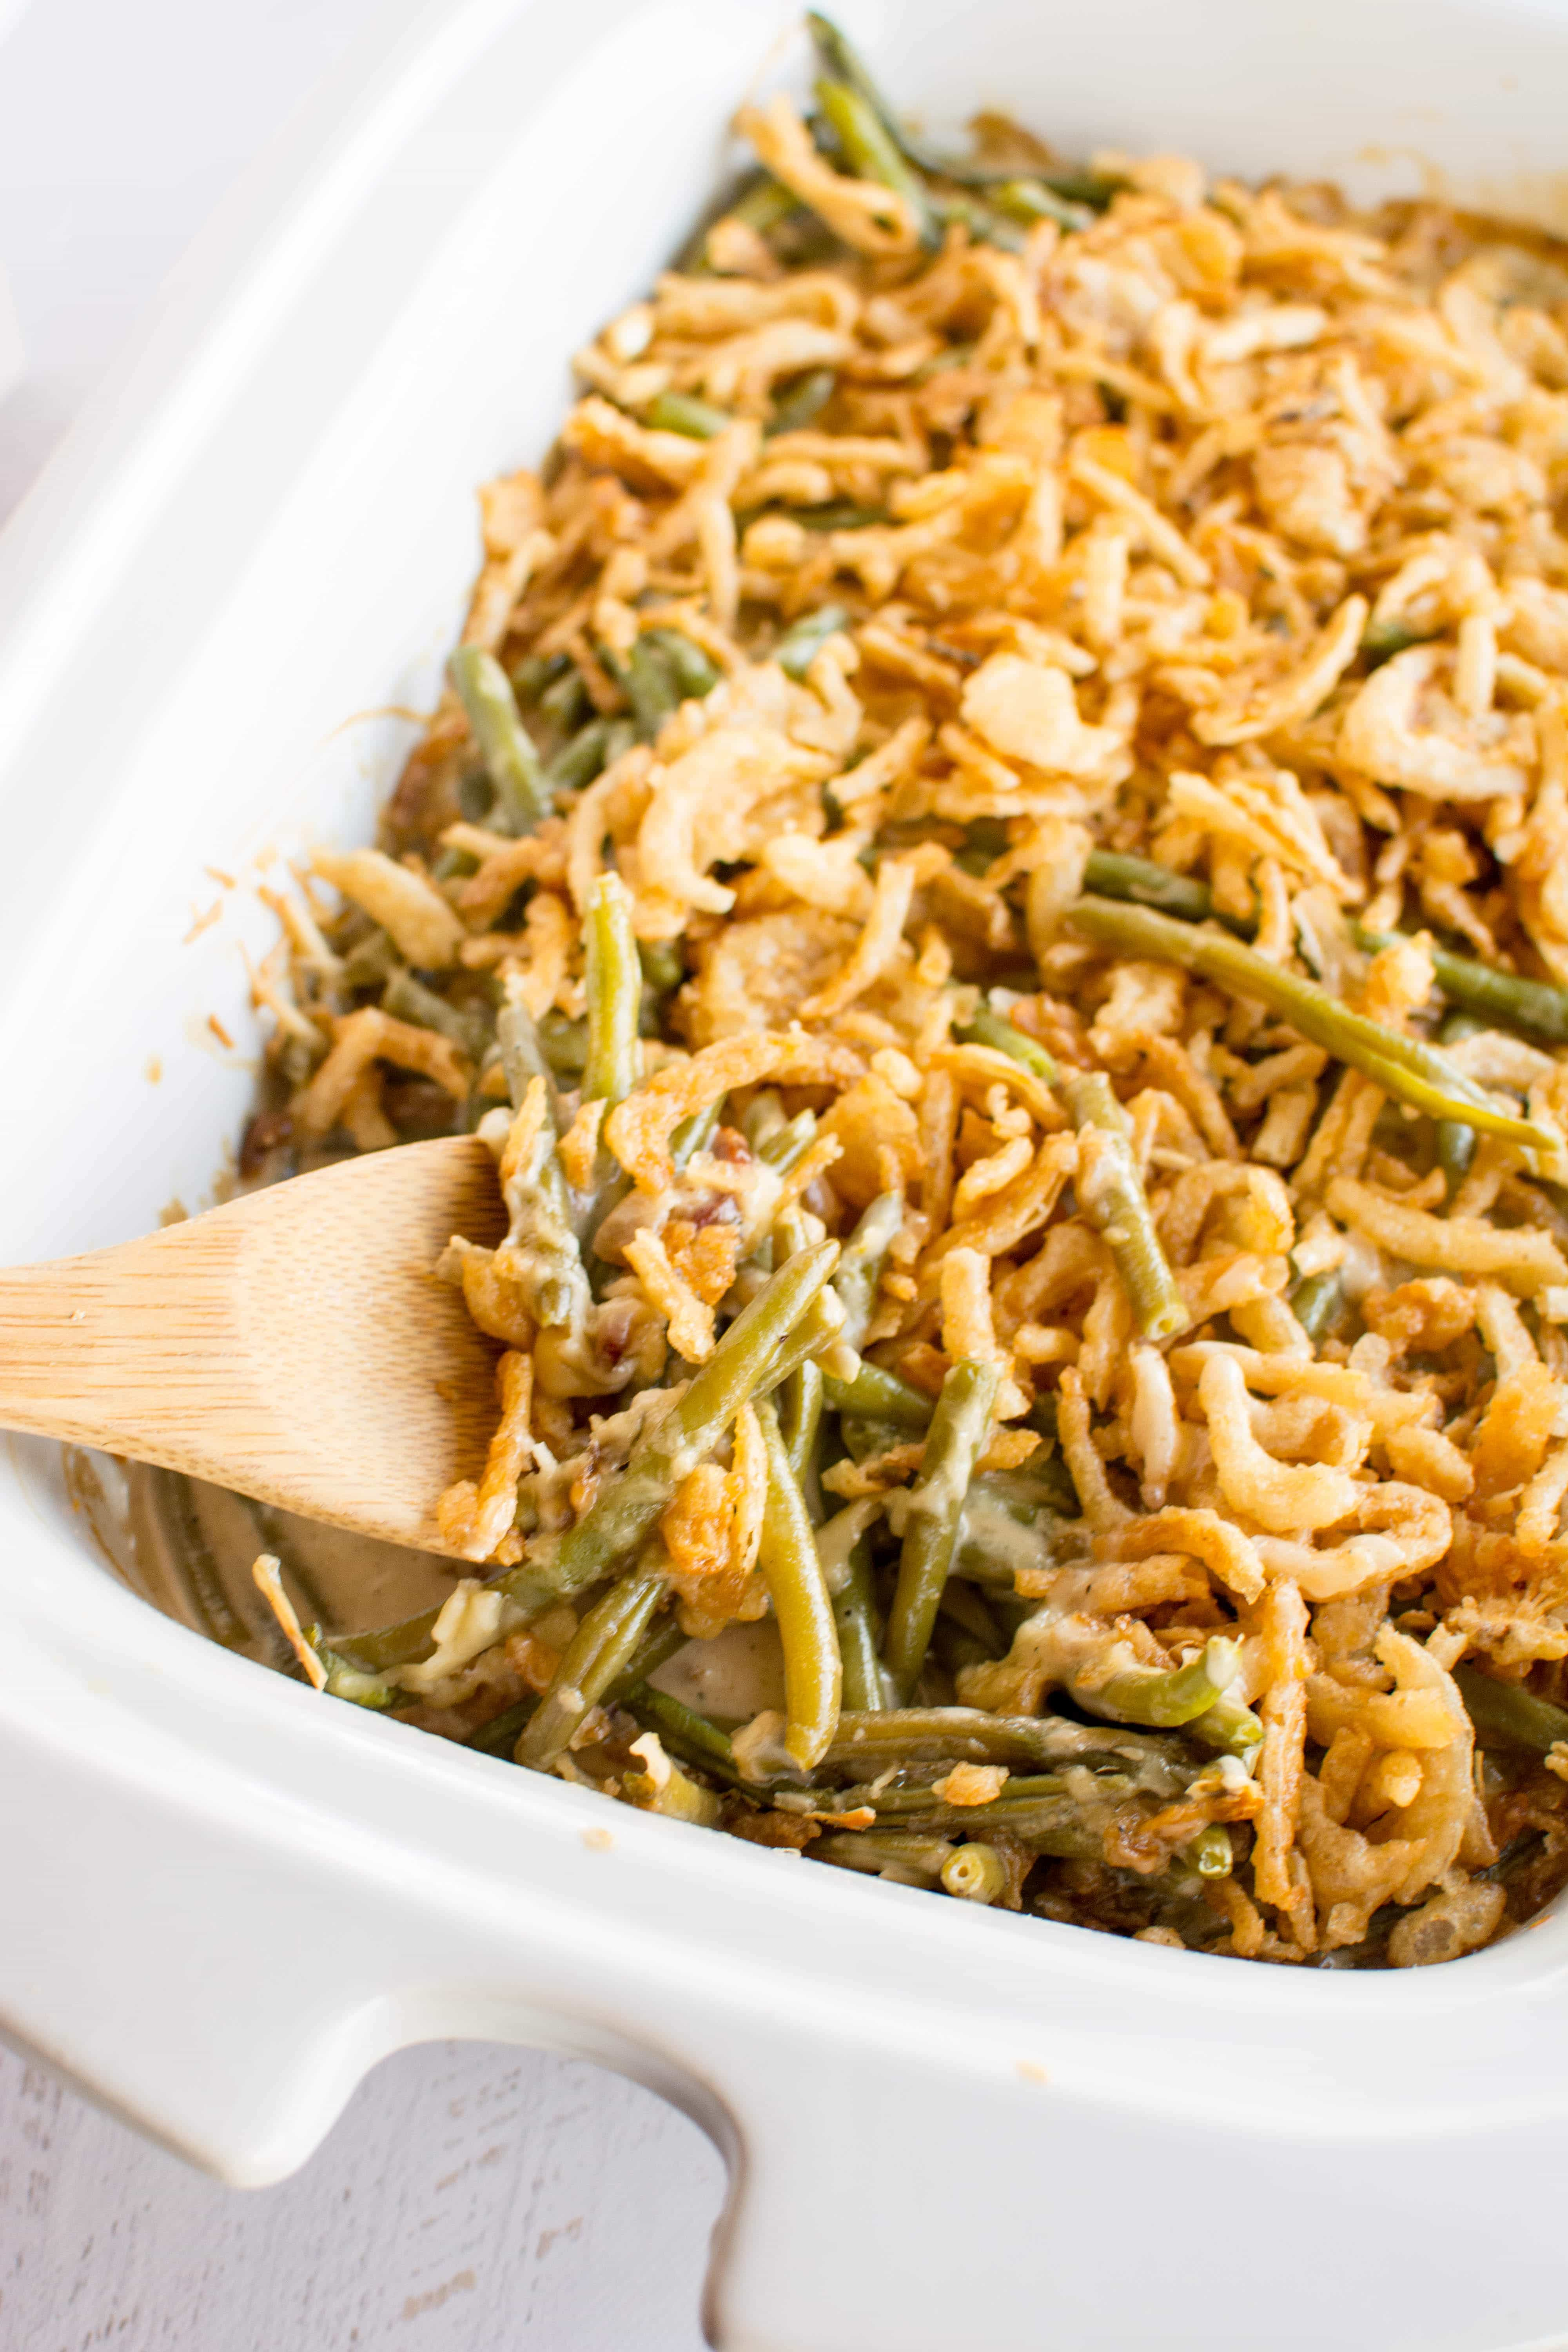 FRENCH'S Green Bean Casserole RecipeSalads & Sides· Entrees· Products· Recipes.